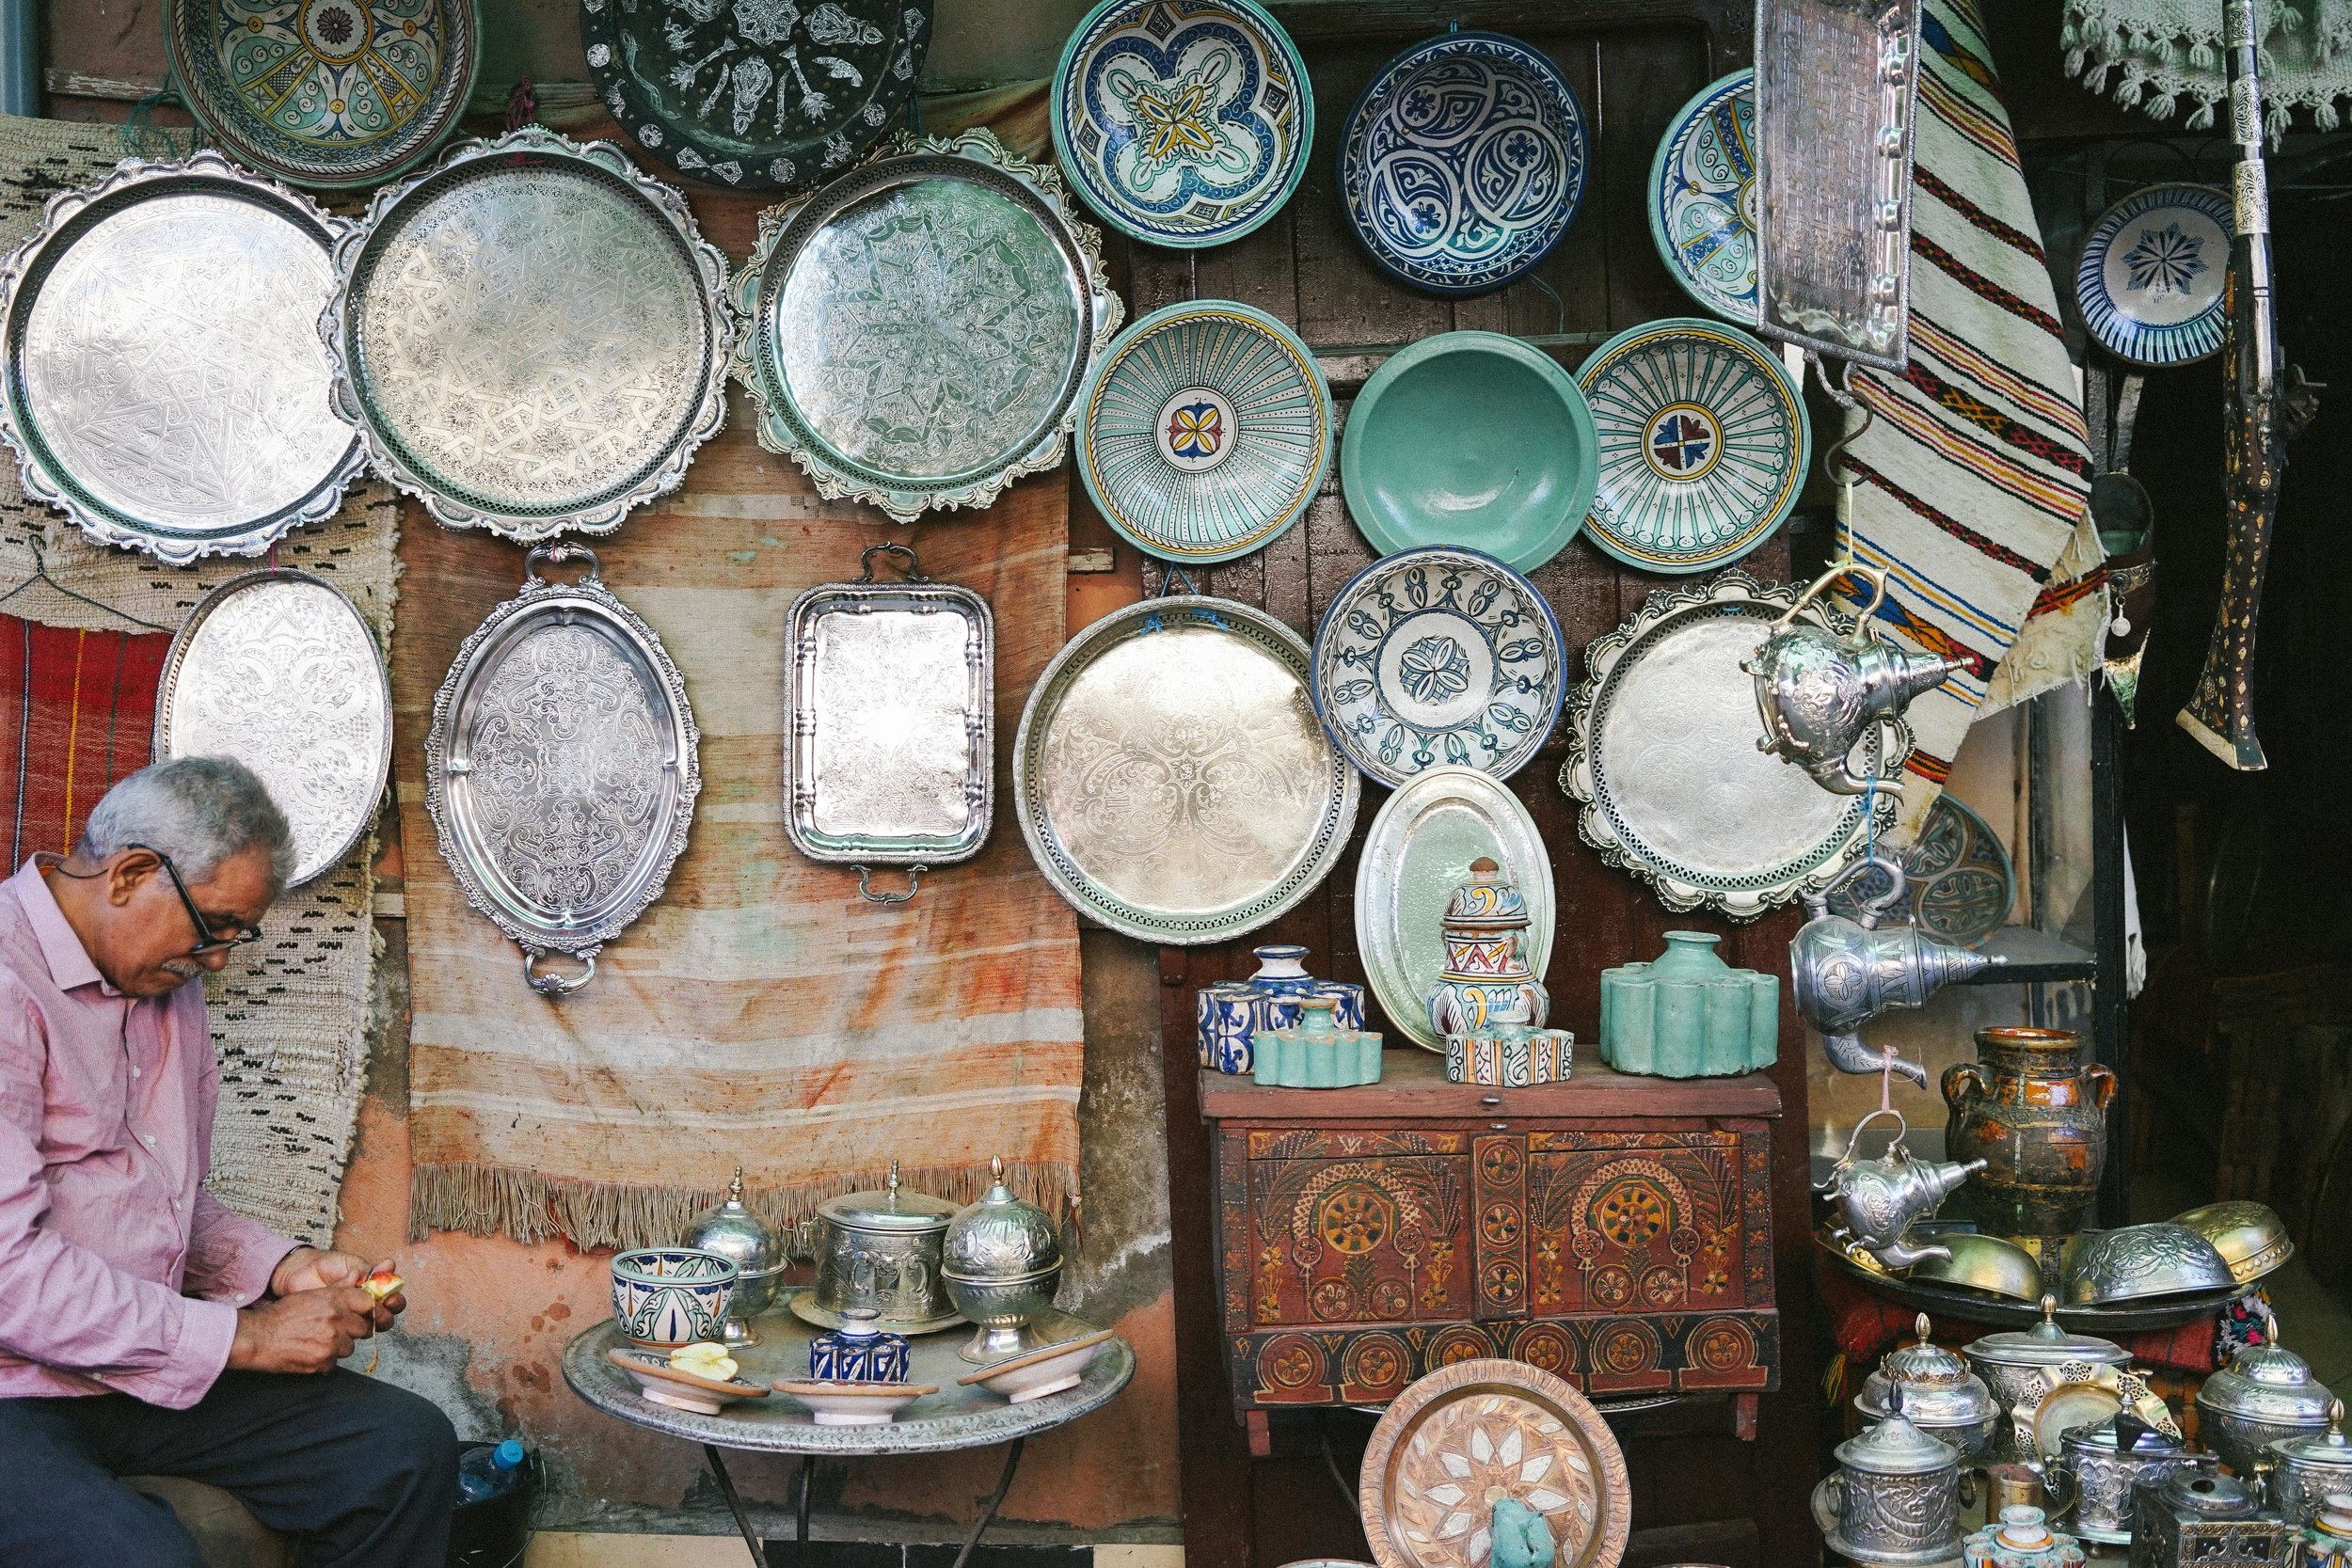 10-travel-tips-know-before-visiting-marrakech